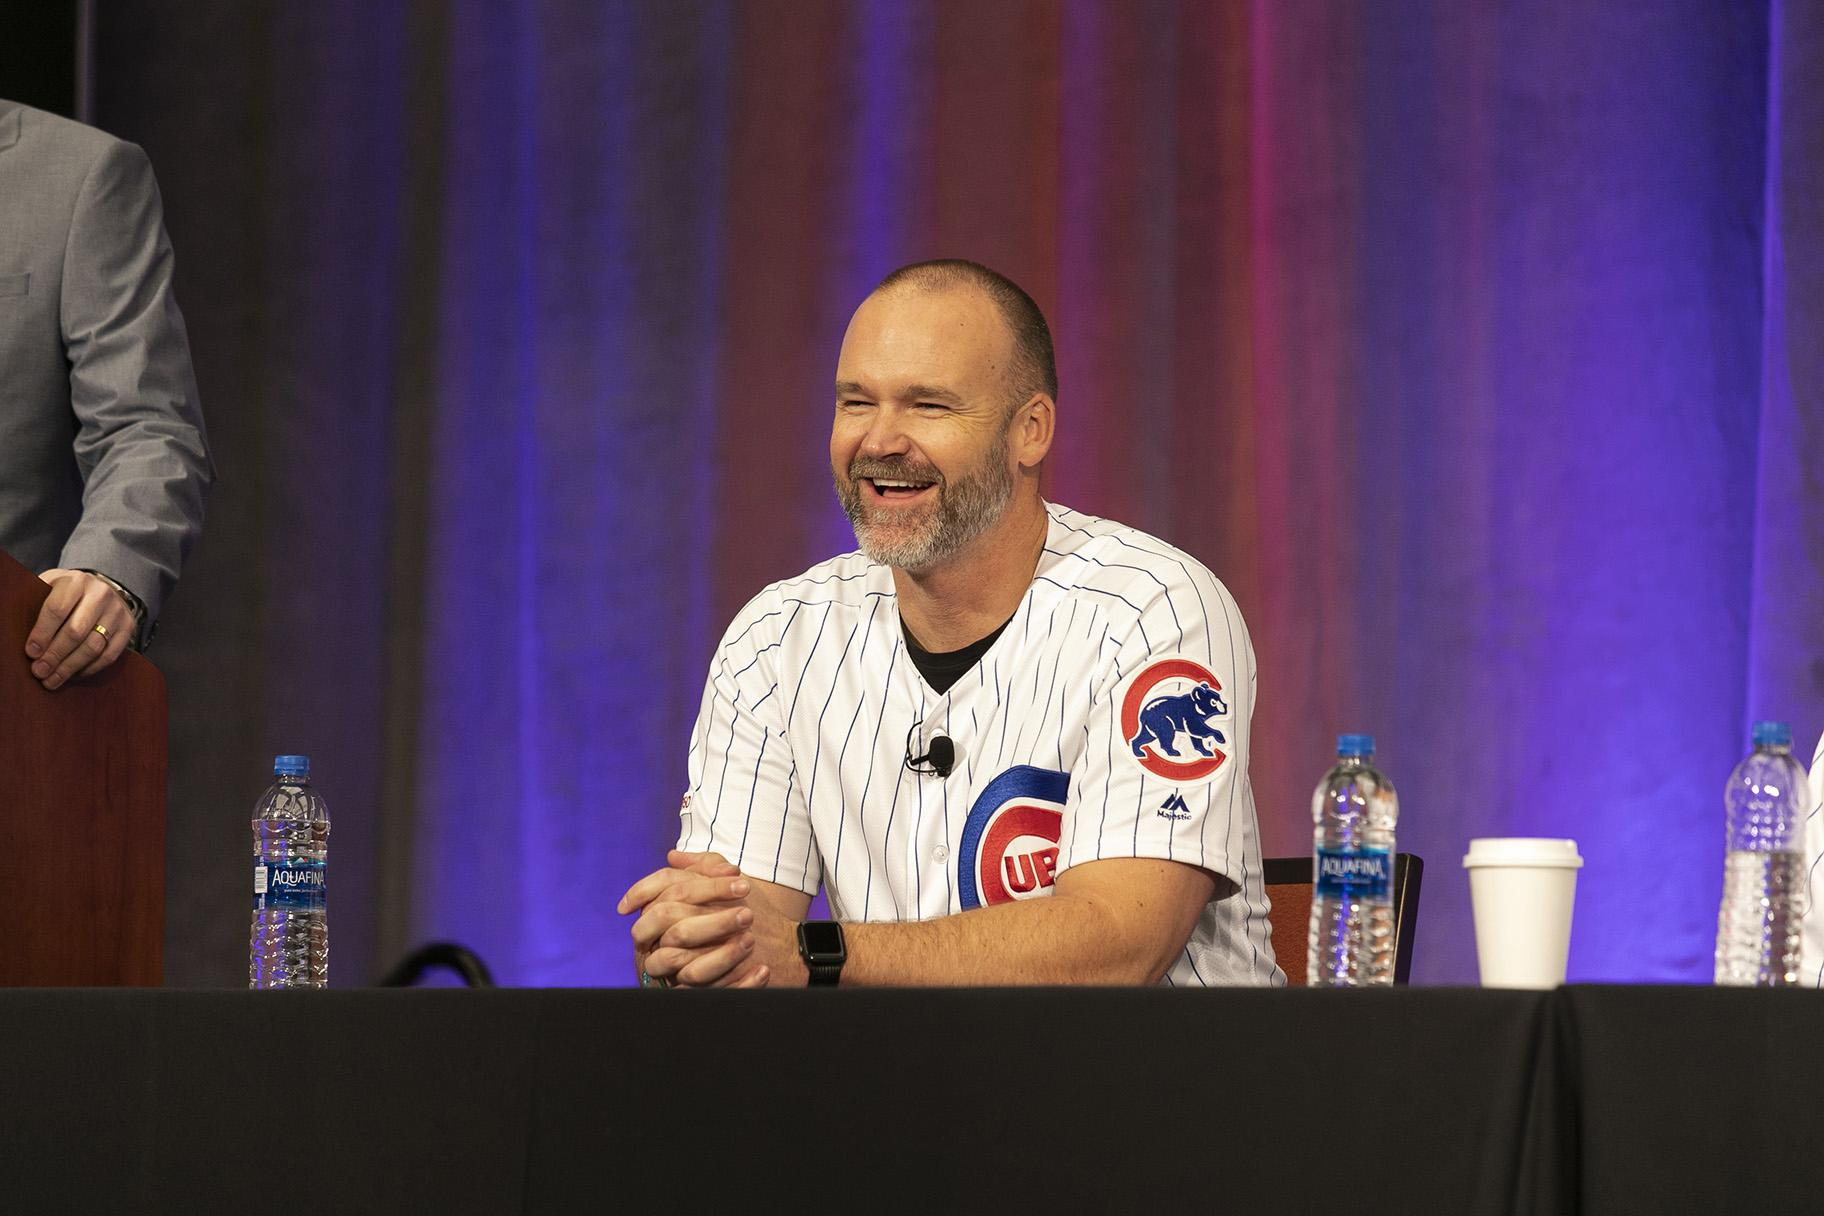 David Ross laughs during a panel discussion at the recent Cubs Convention. (Courtesy Steve Green / Chicago Cubs)